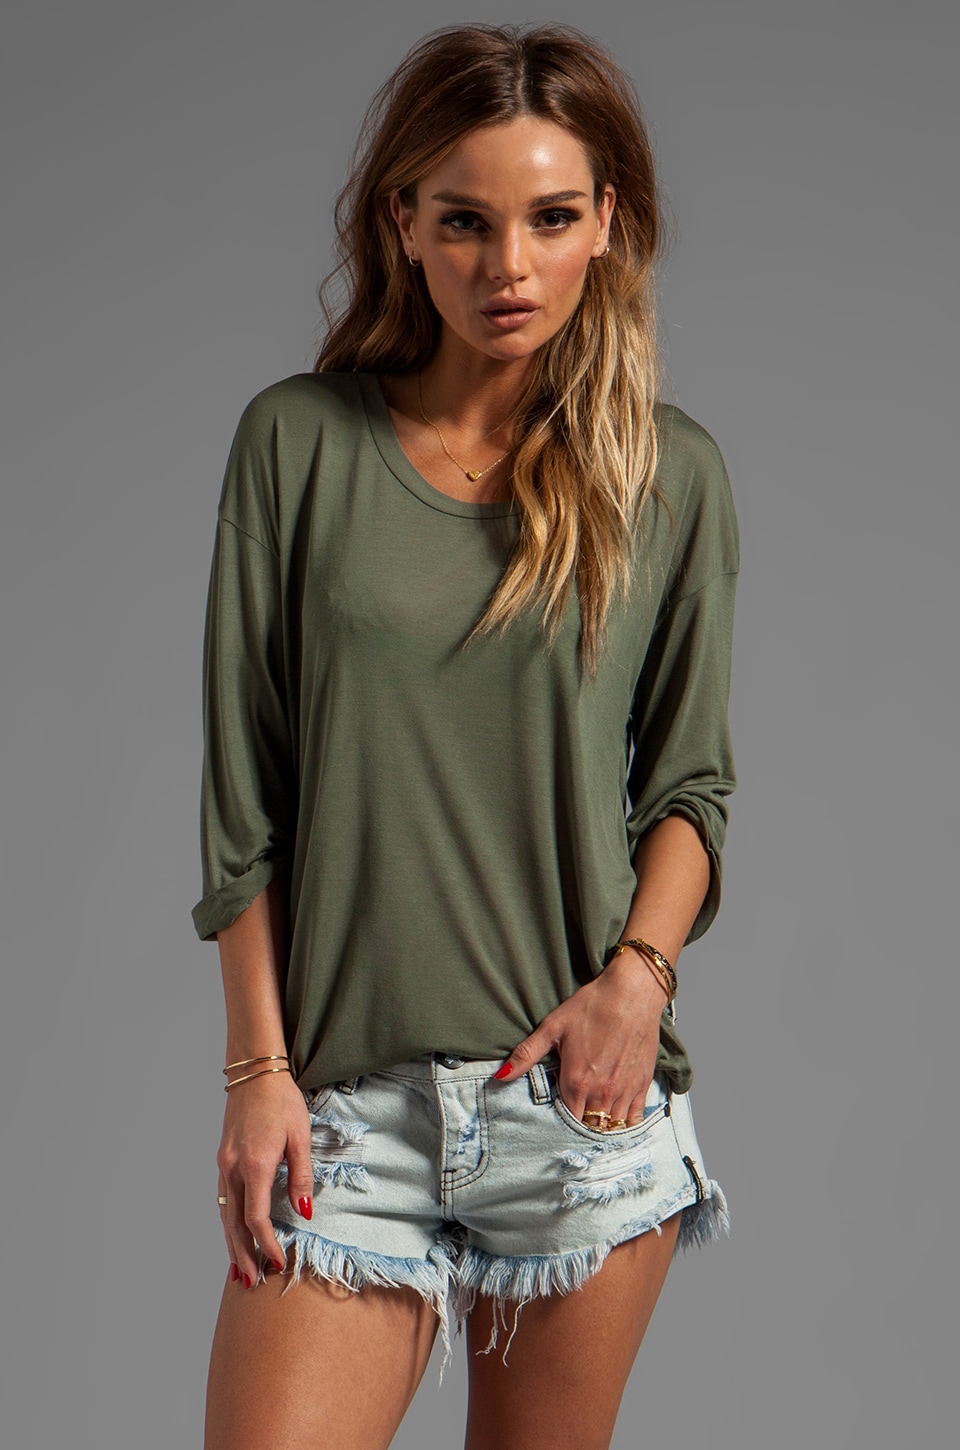 Blue Life Elbow Sleeve Best Bum Tee in Military Green